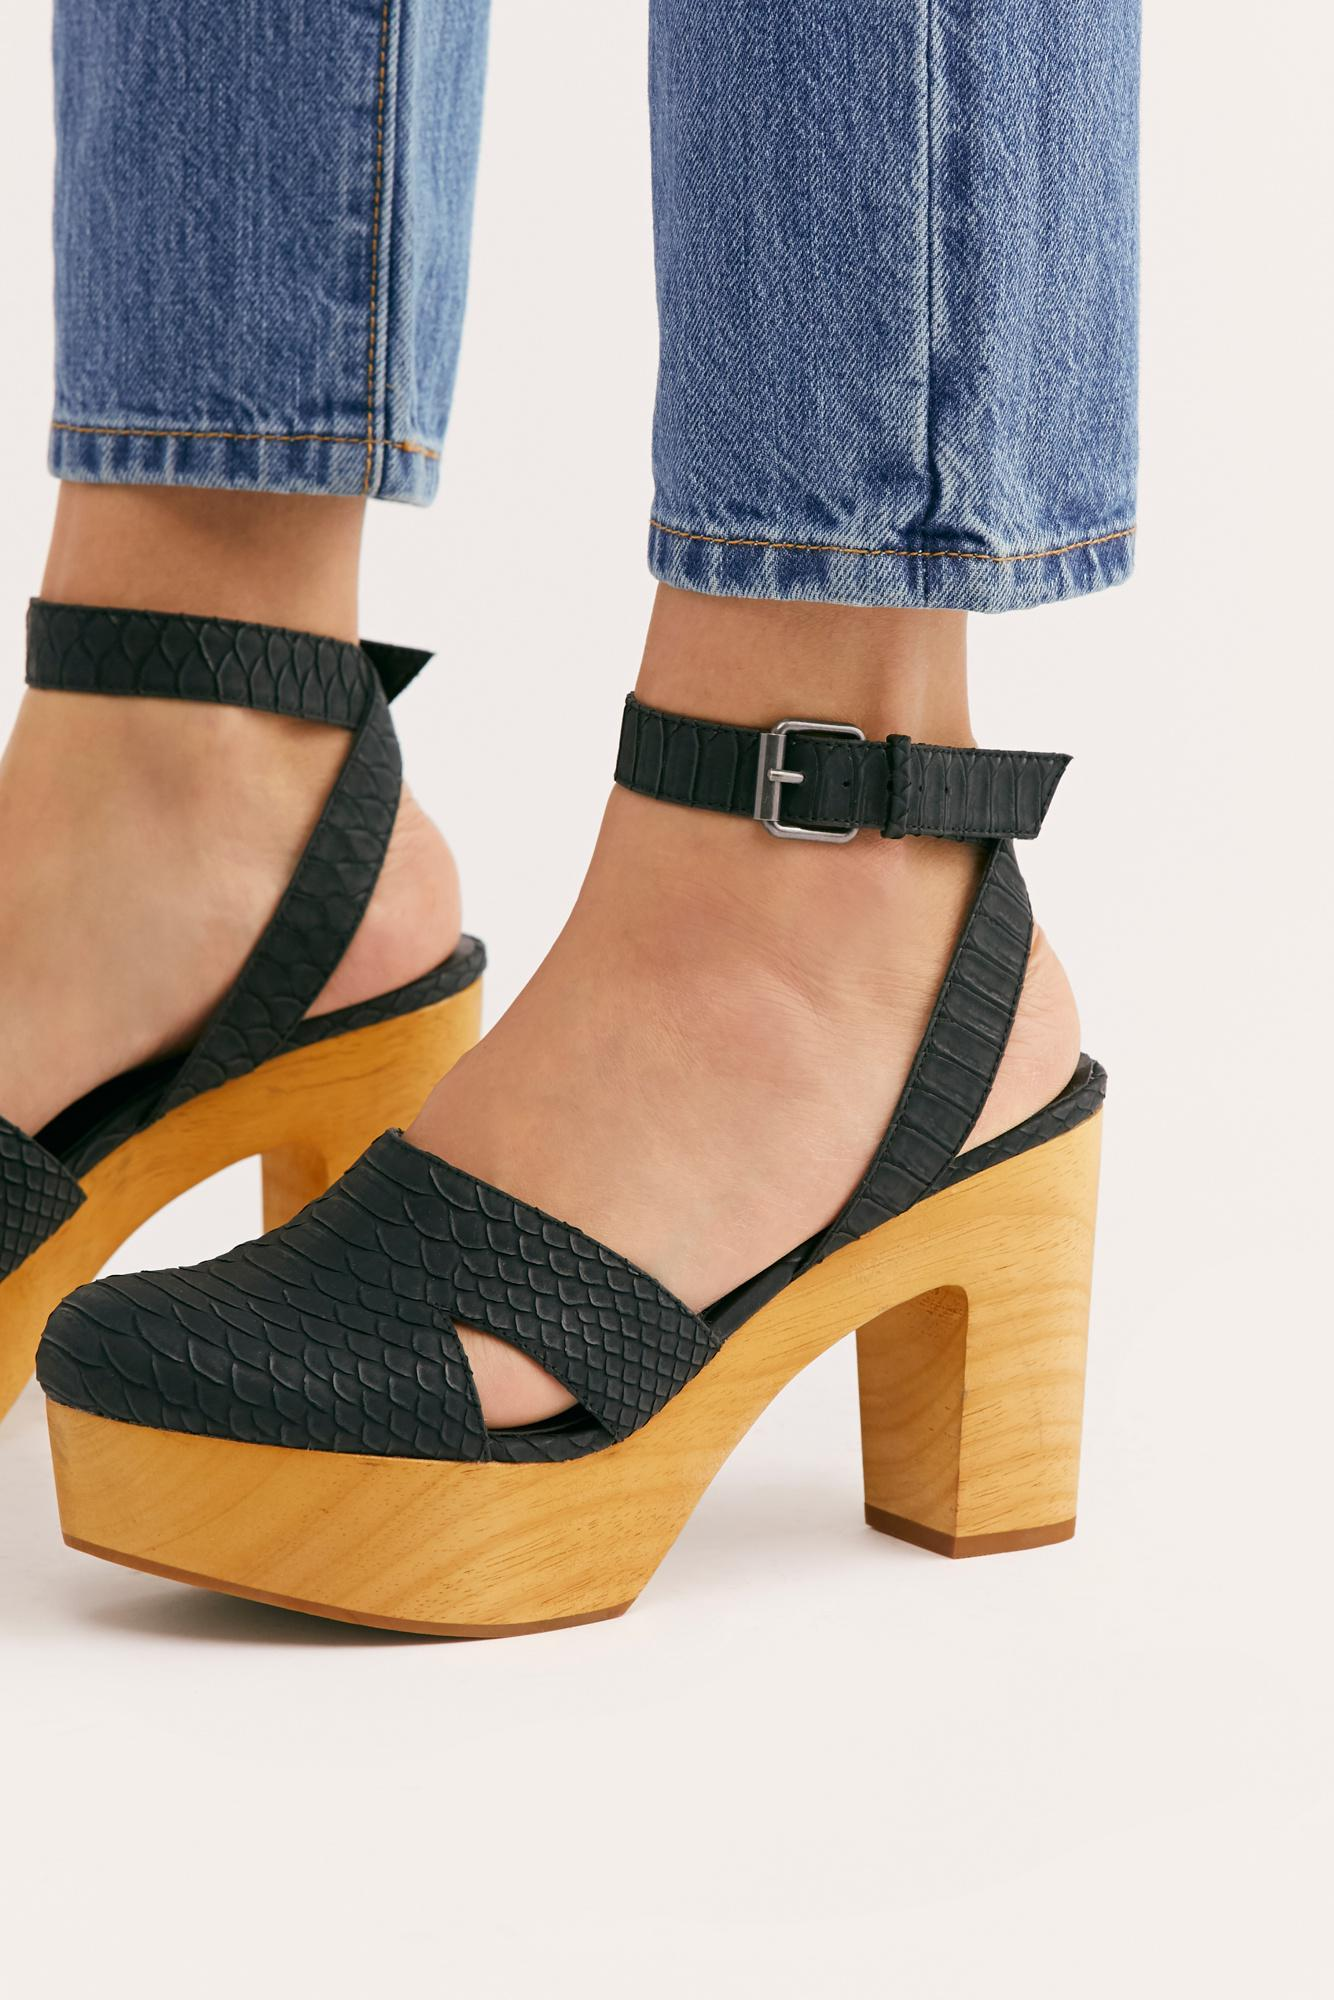 1a3a111ce044 Free People - Black Vegan Sunset Clog By Matisse - Lyst. View fullscreen